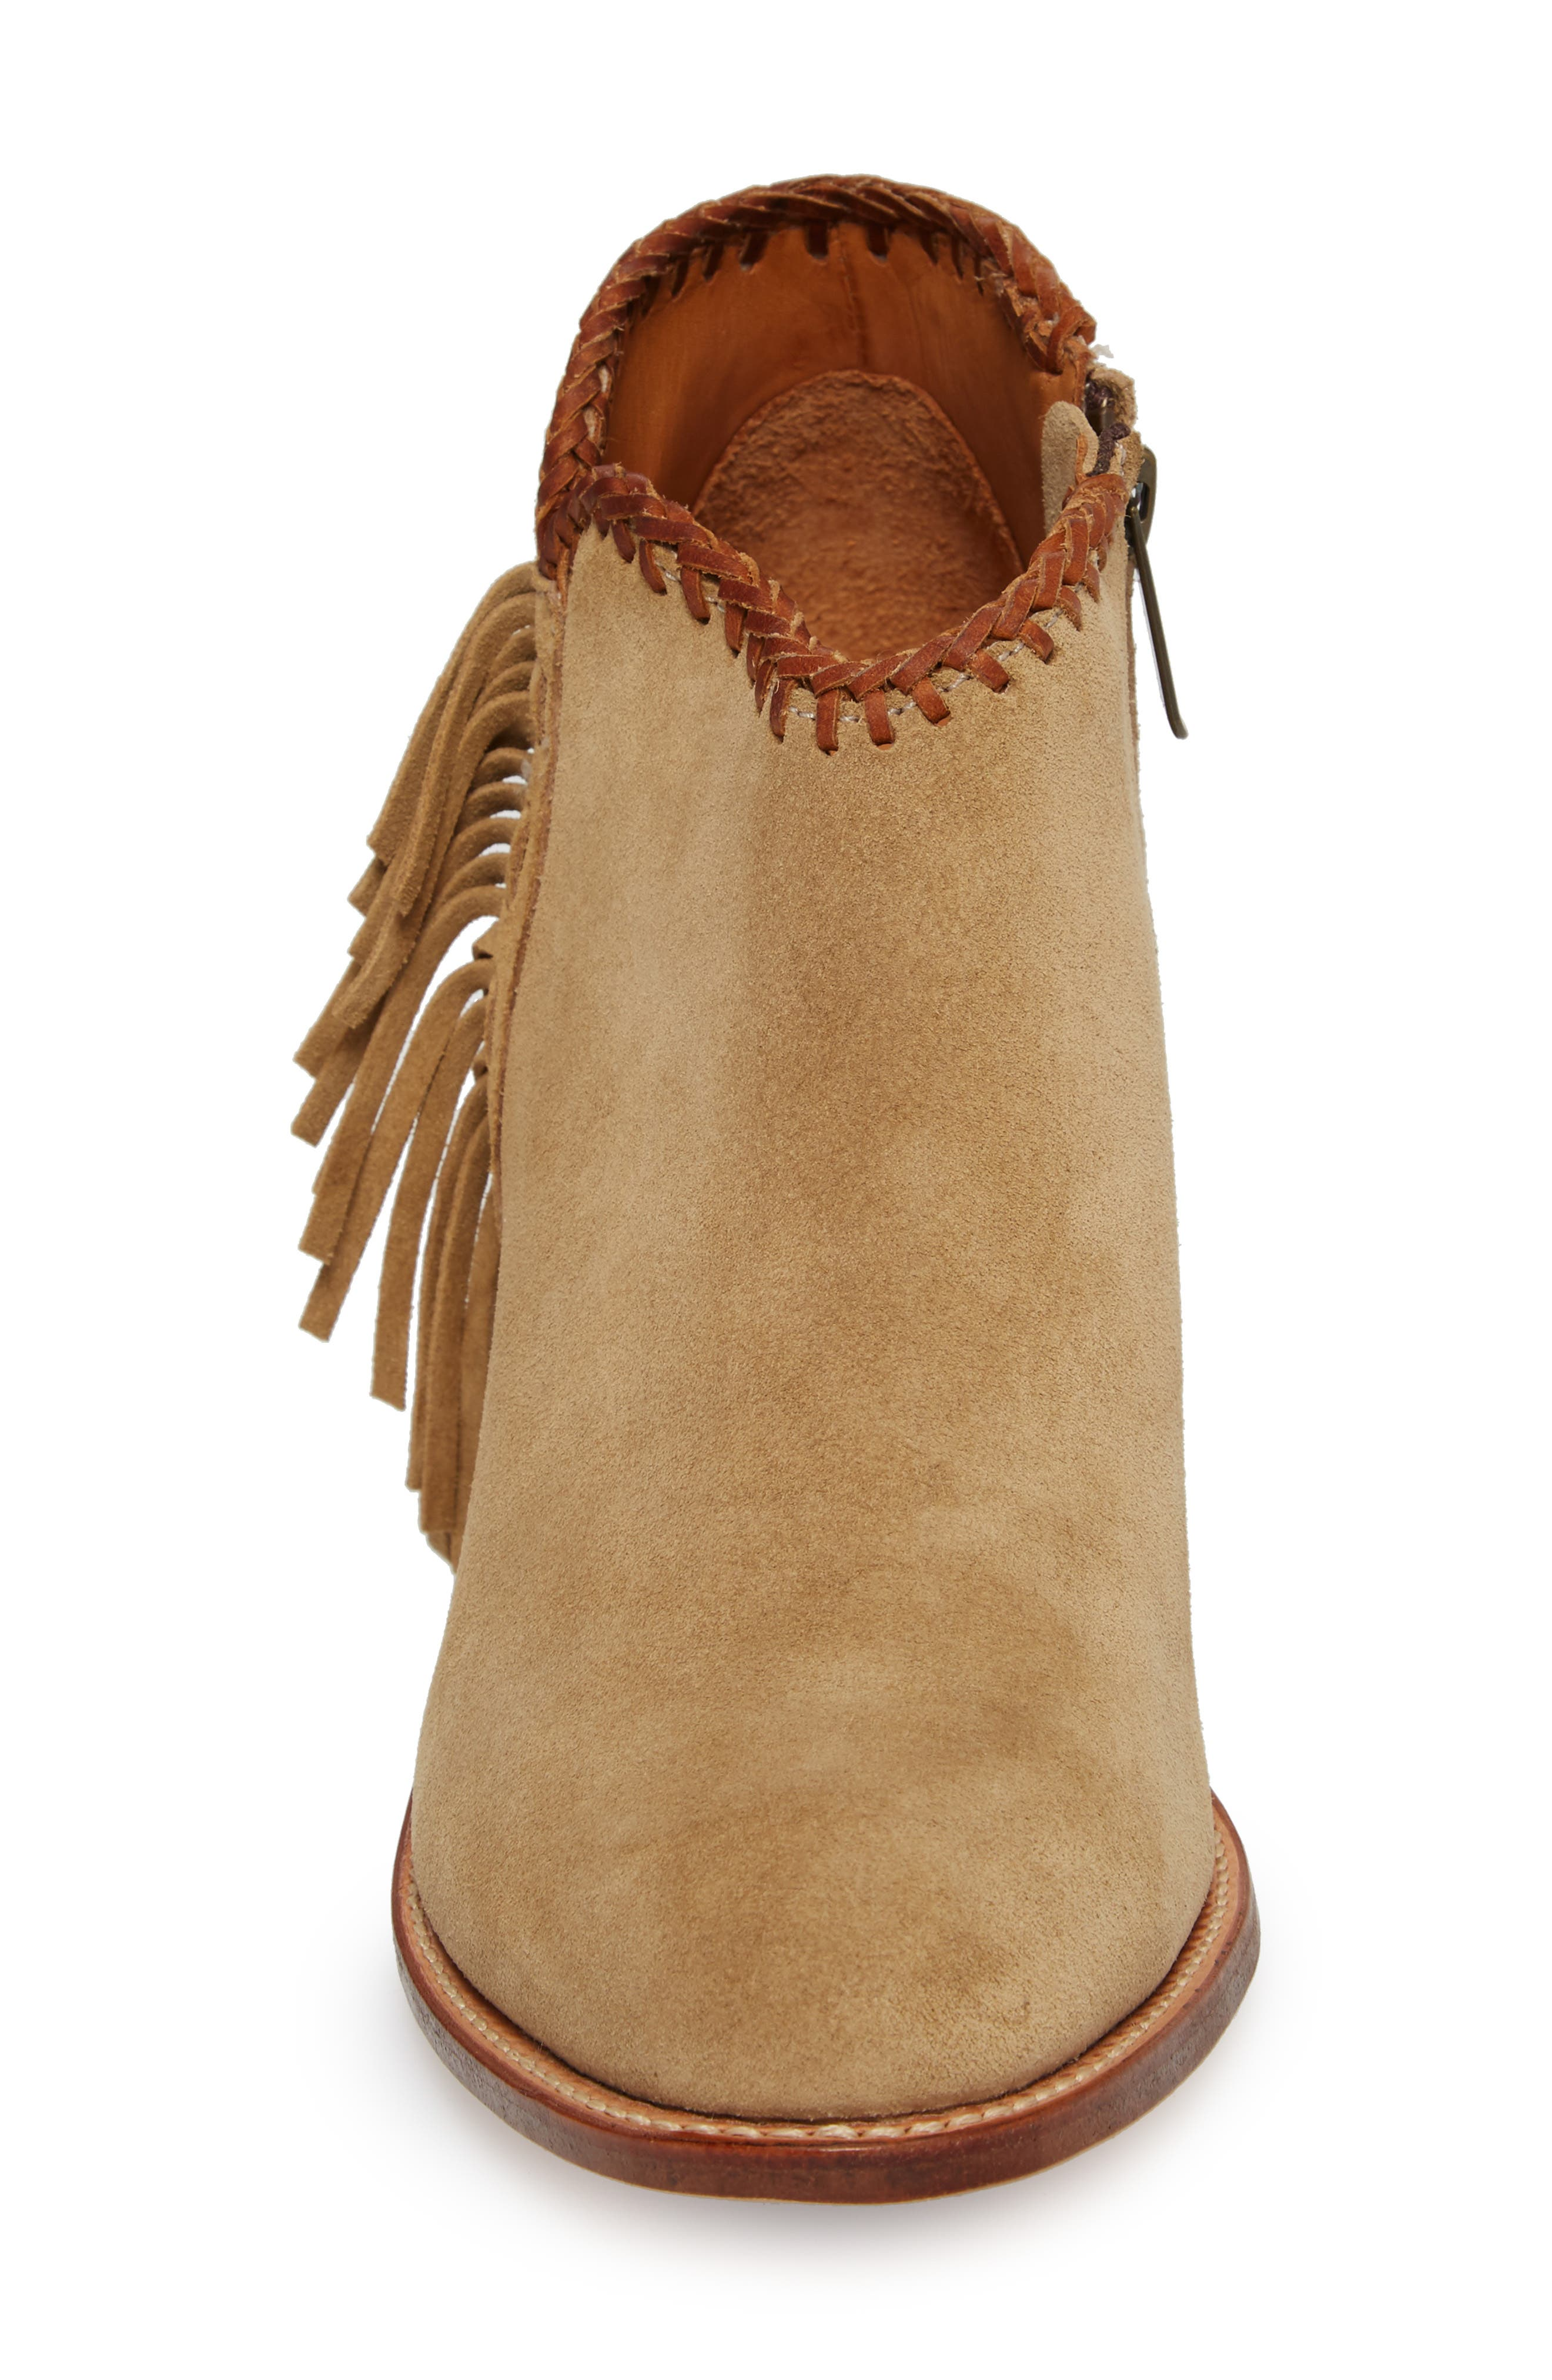 Sonya Fringed Bootie,                             Alternate thumbnail 4, color,                             Taupe Suede